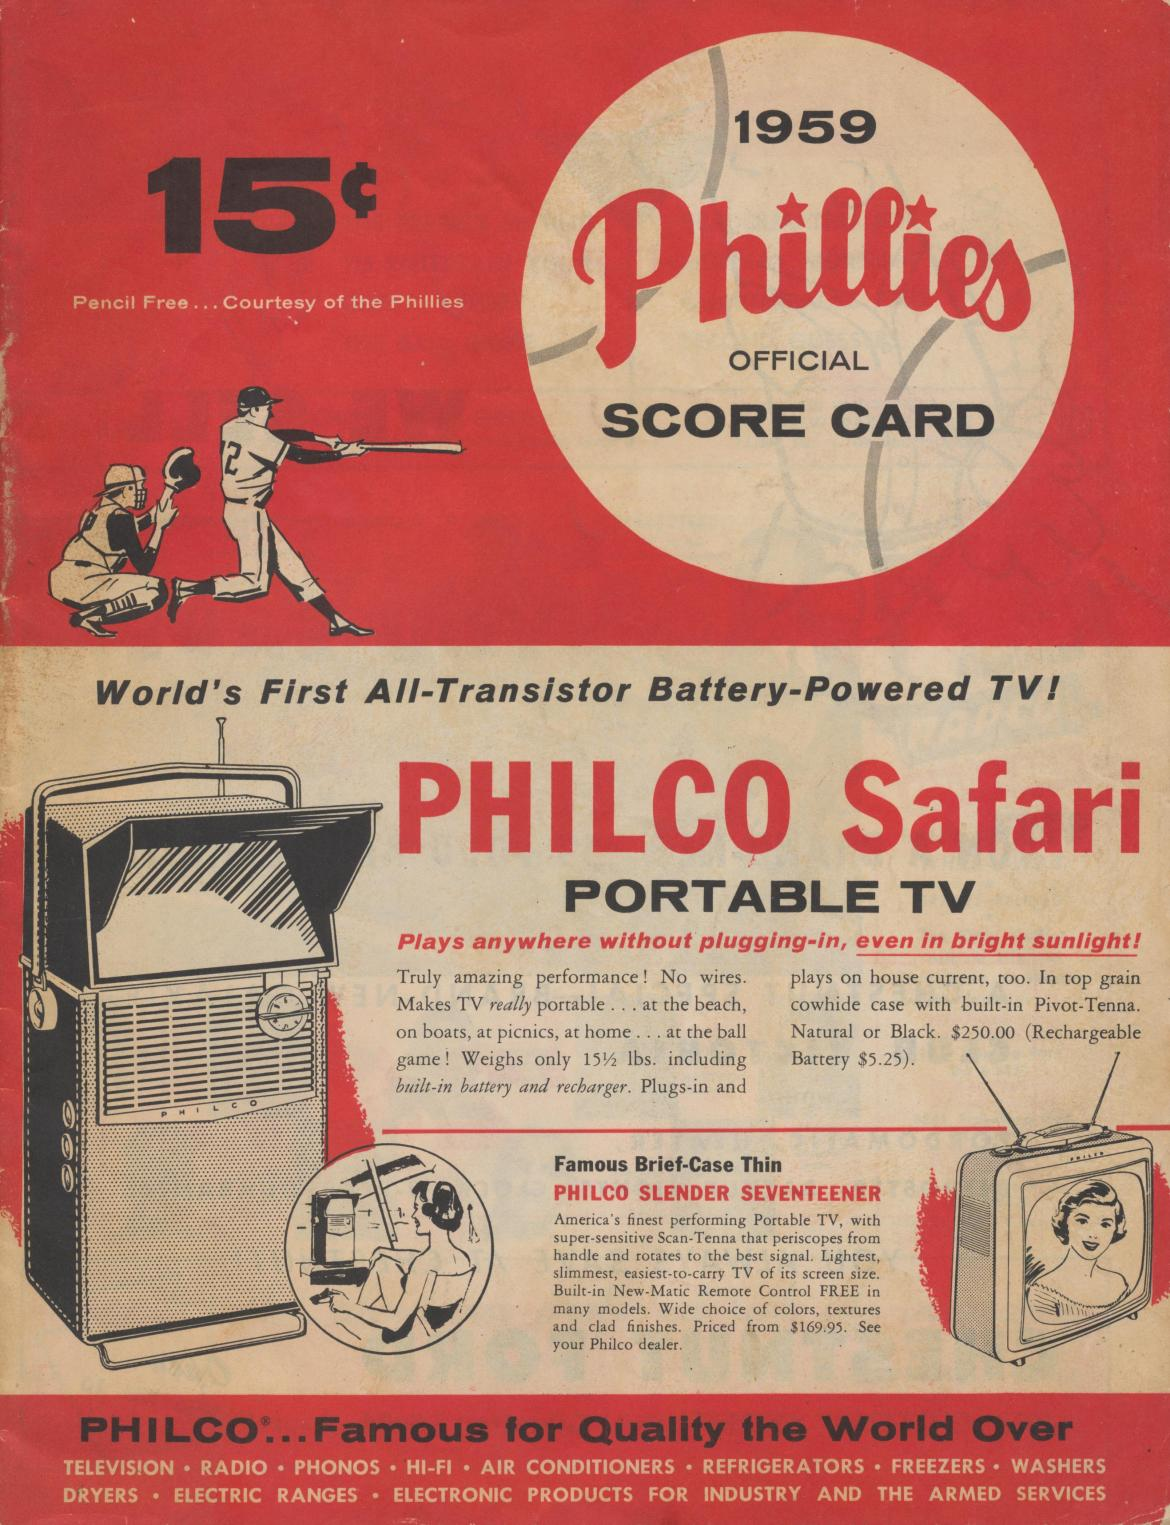 1959 Phillies Official Scorecard